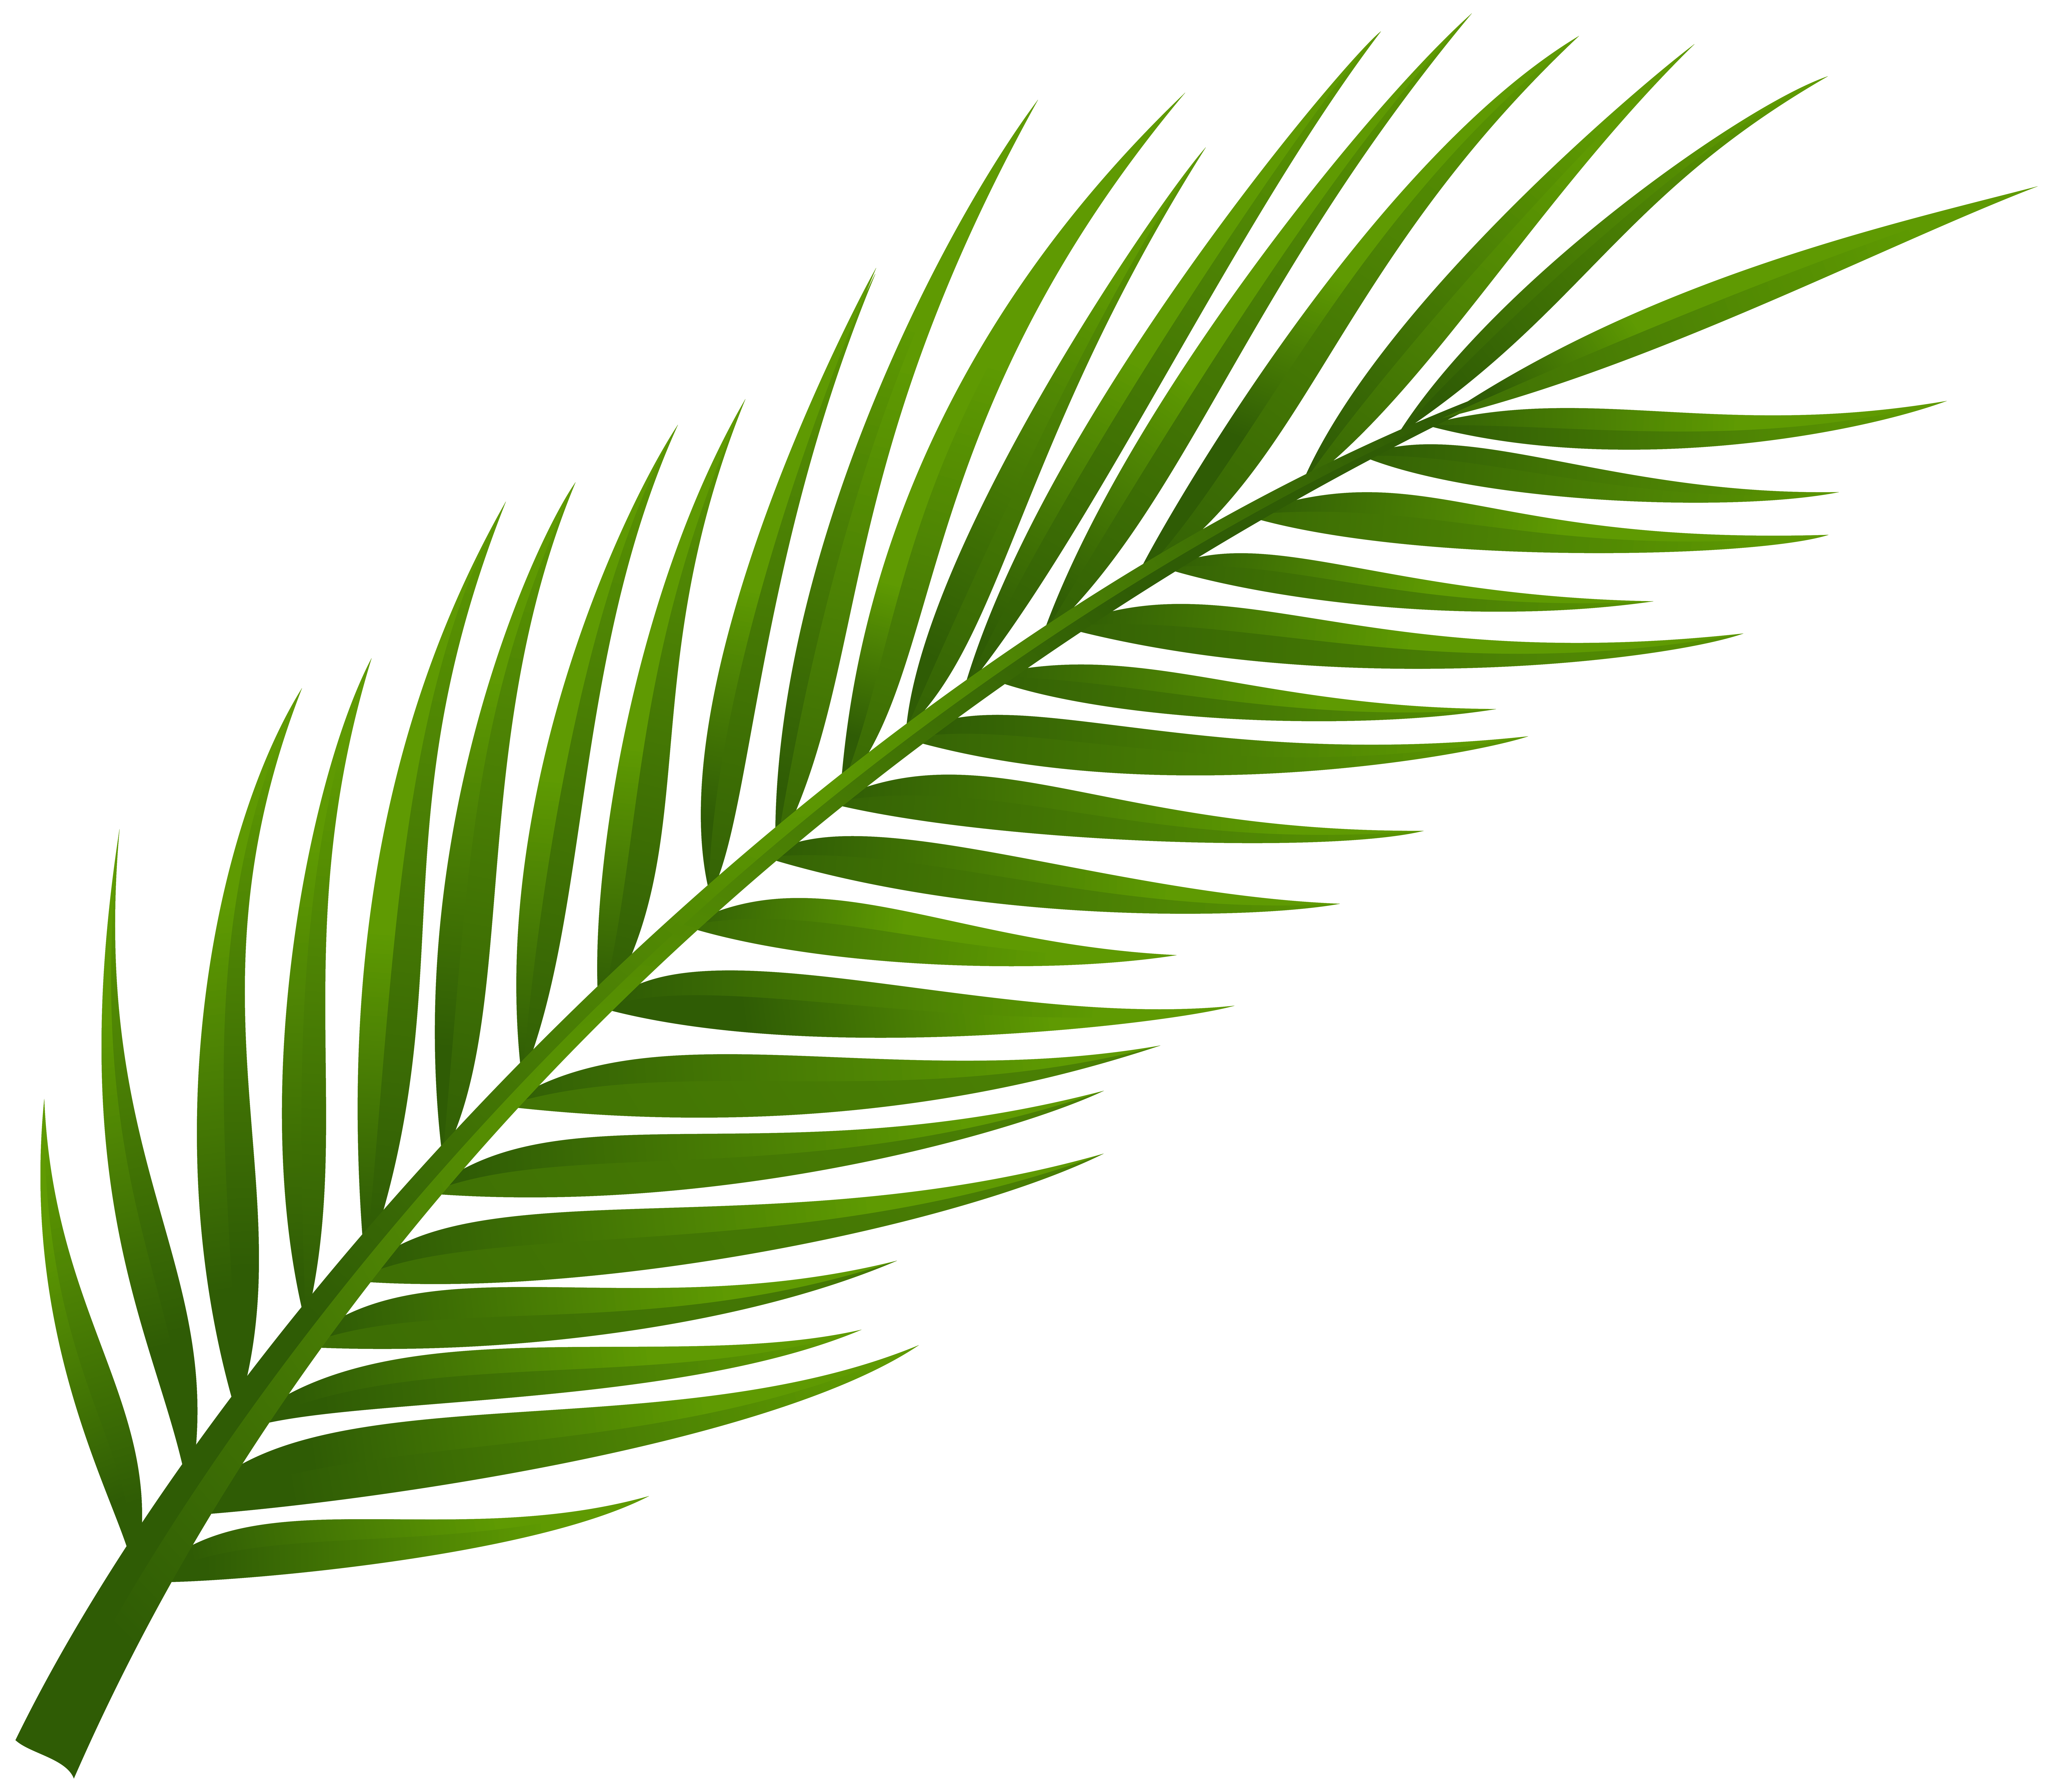 Palms clipart free freeuse download Free Palm Branch Cliparts, Download Free Clip Art, Free Clip ... freeuse download